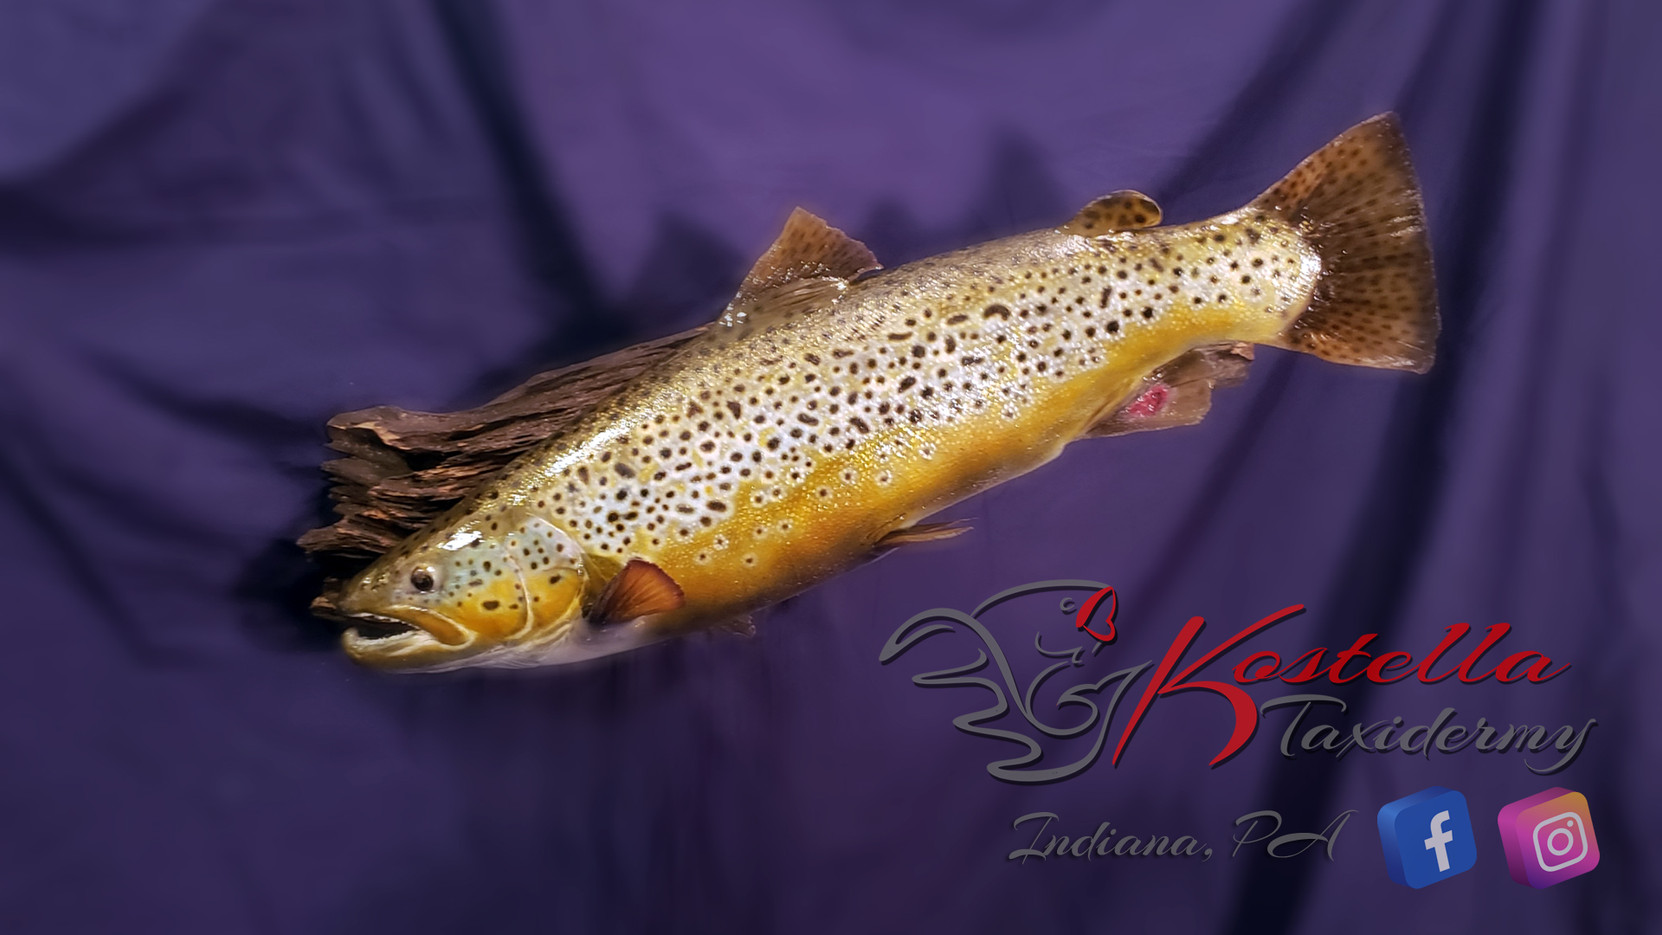 Kostella Taxidermy